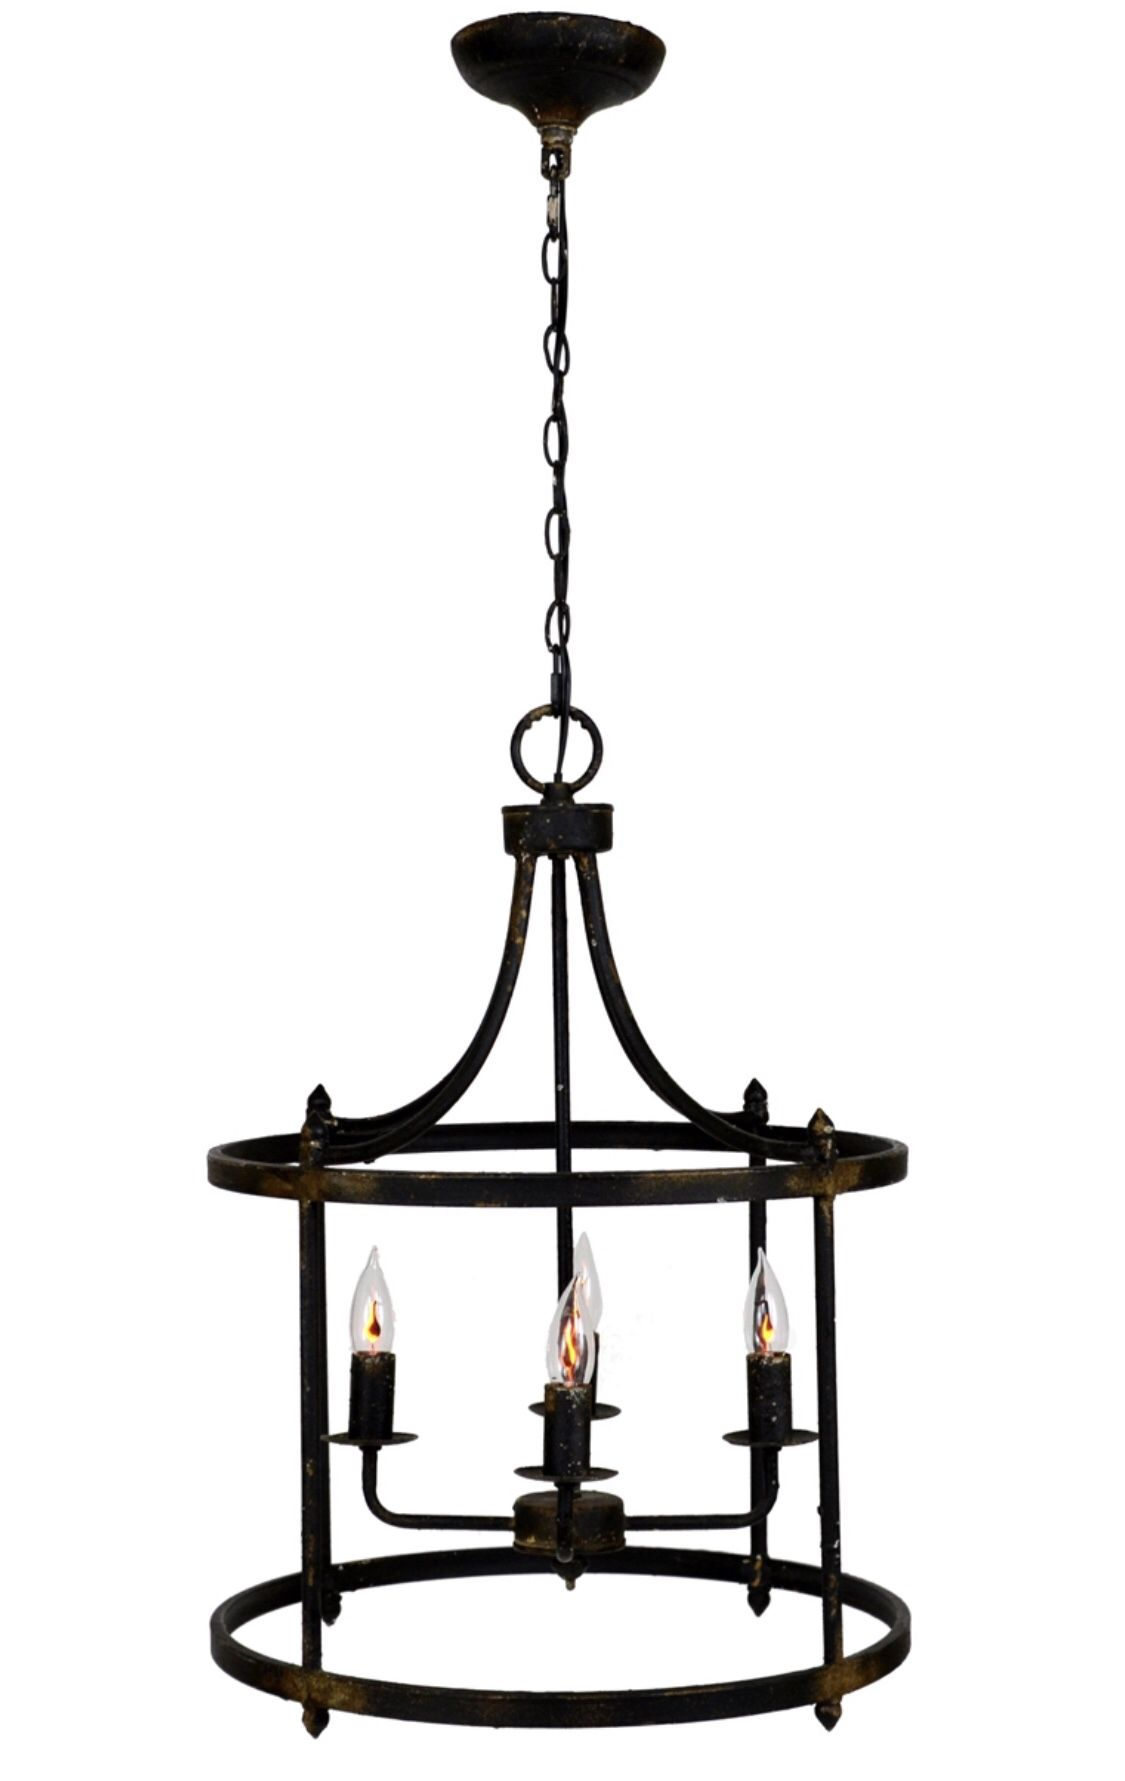 Century 4 Light Black Lantern Hanging Lights Black Pendant